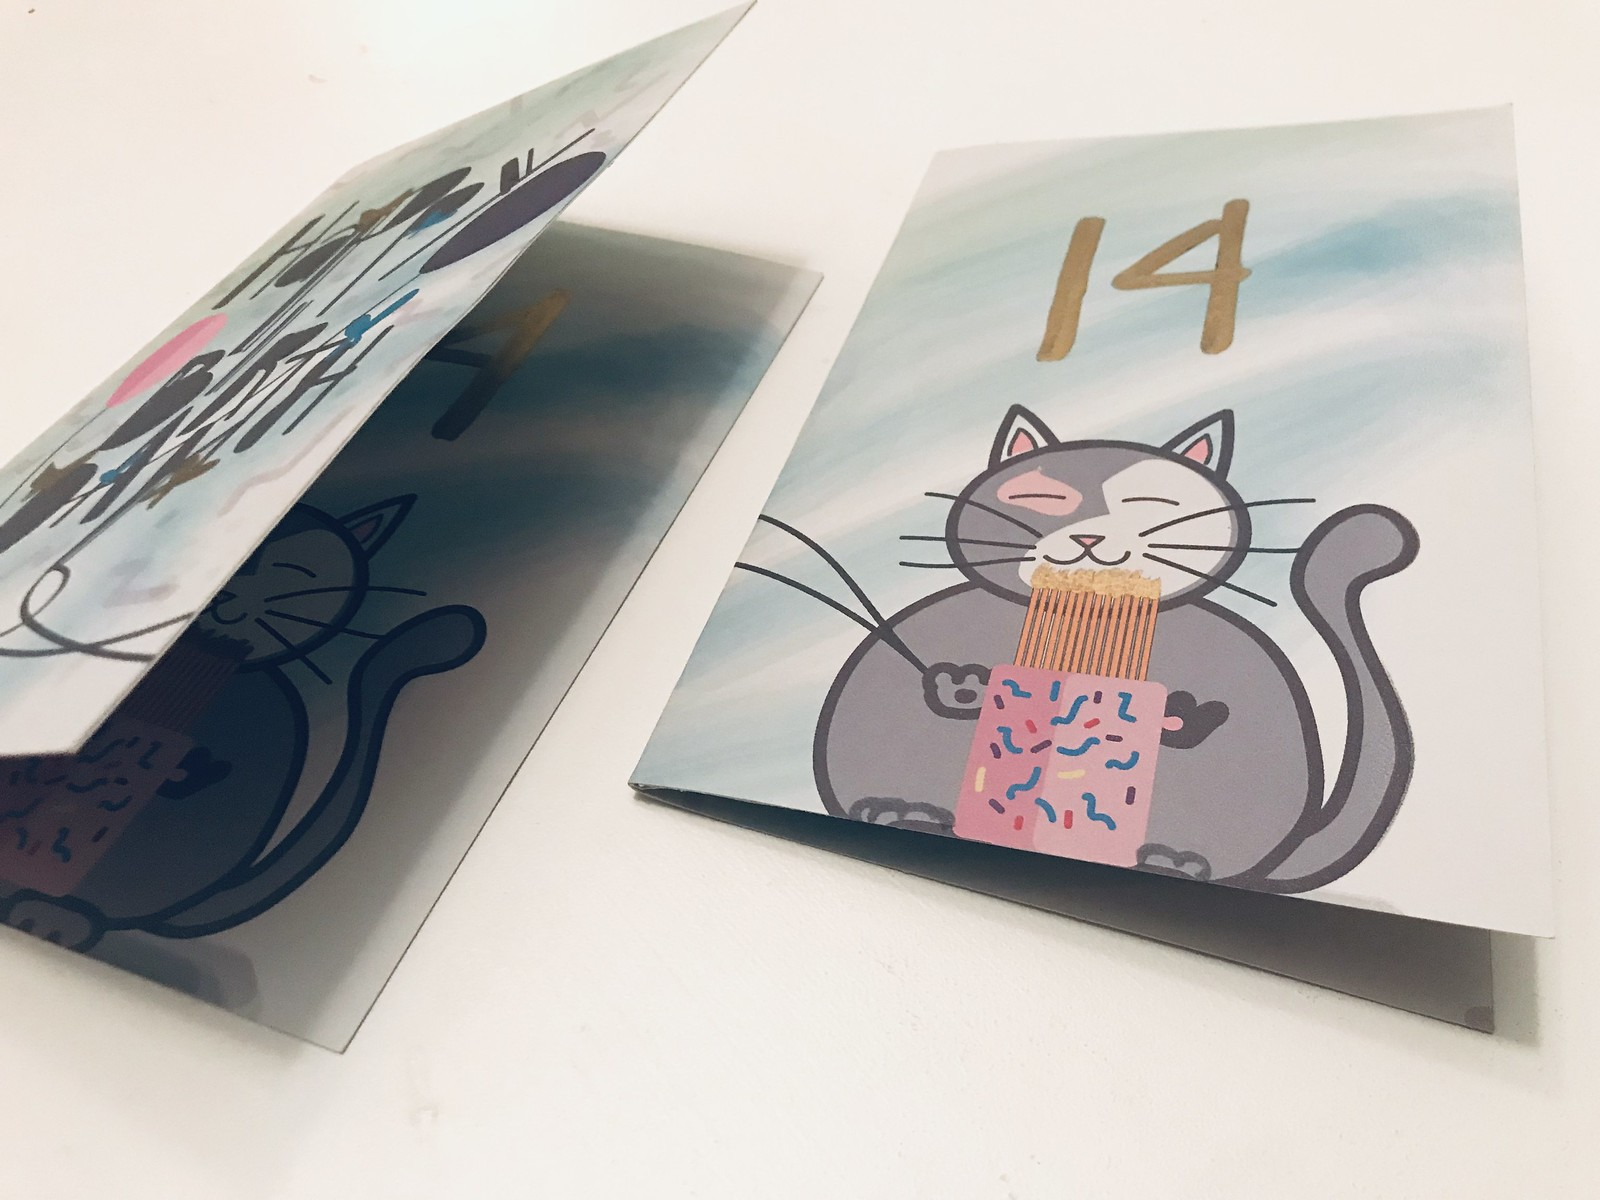 Abigail's Birthday Card Design, Card Design, Birthday Card Design, Cat illustration, Cat Card Design, Cute Cards for kids, Childrens Birthday Cards, Birthday Cards, B  E  C  C  A, BECCA studio